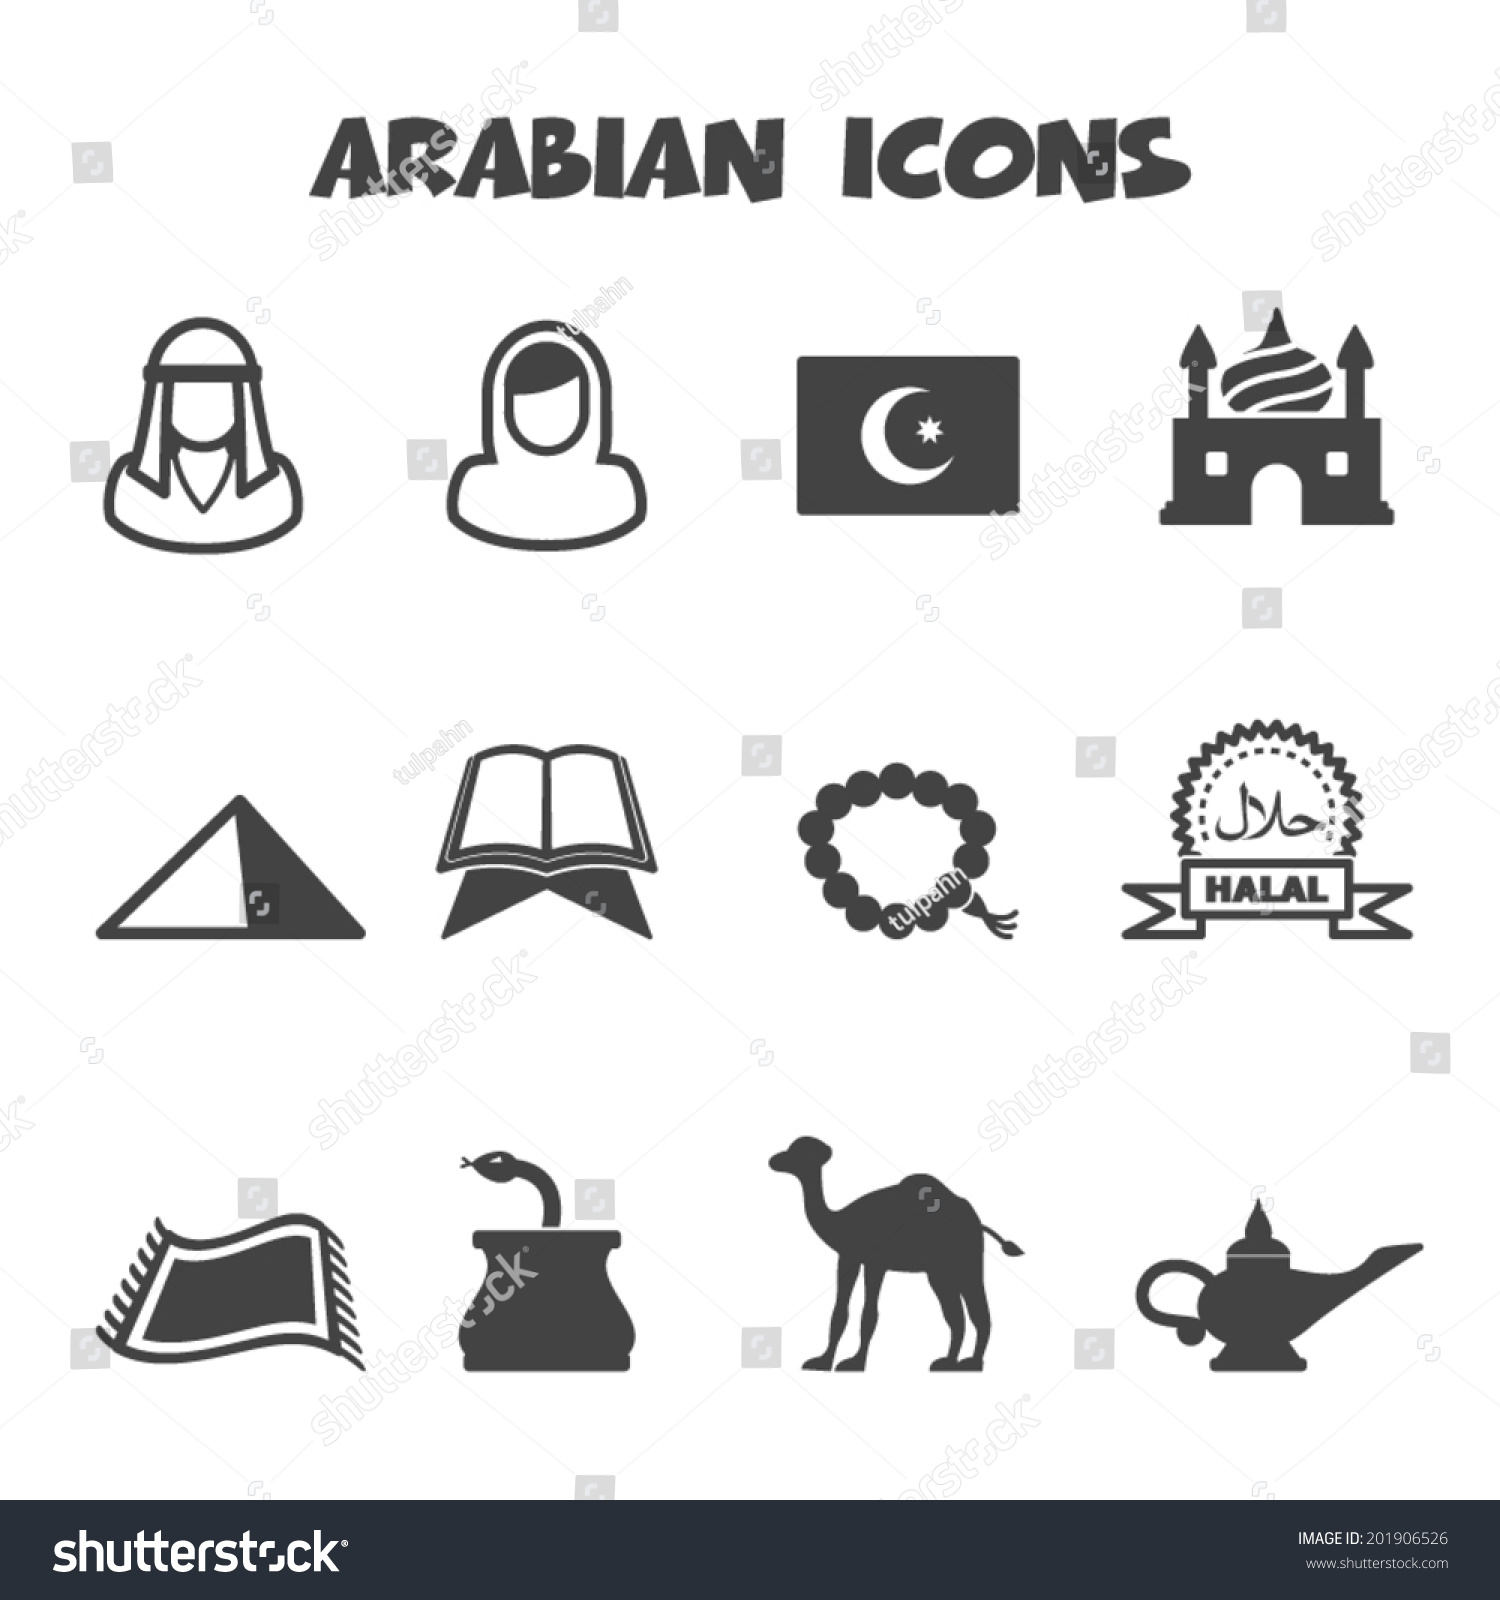 araby symbols The timeline below shows where the symbol blindness appears in araby the colored dots and icons indicate which themes are associated with that appearance the colored dots and icons indicate which themes are associated with that appearance.